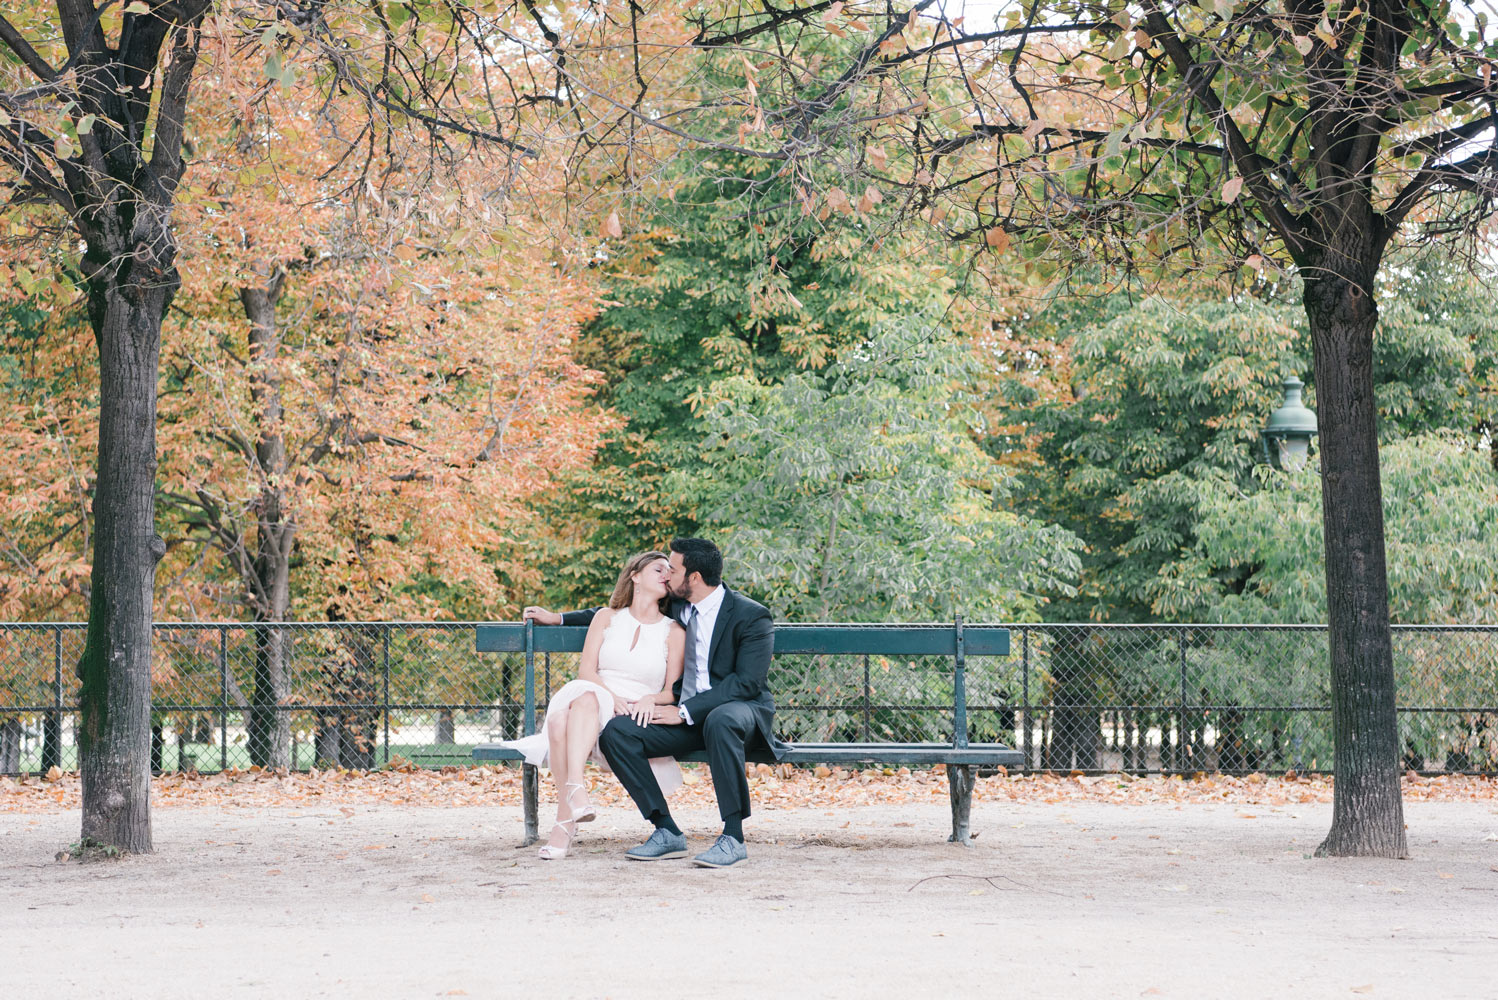 Paris Photographer Tim Moore captures the love of this couple kissing on a bench at the Tuileries Gardens in Paris.